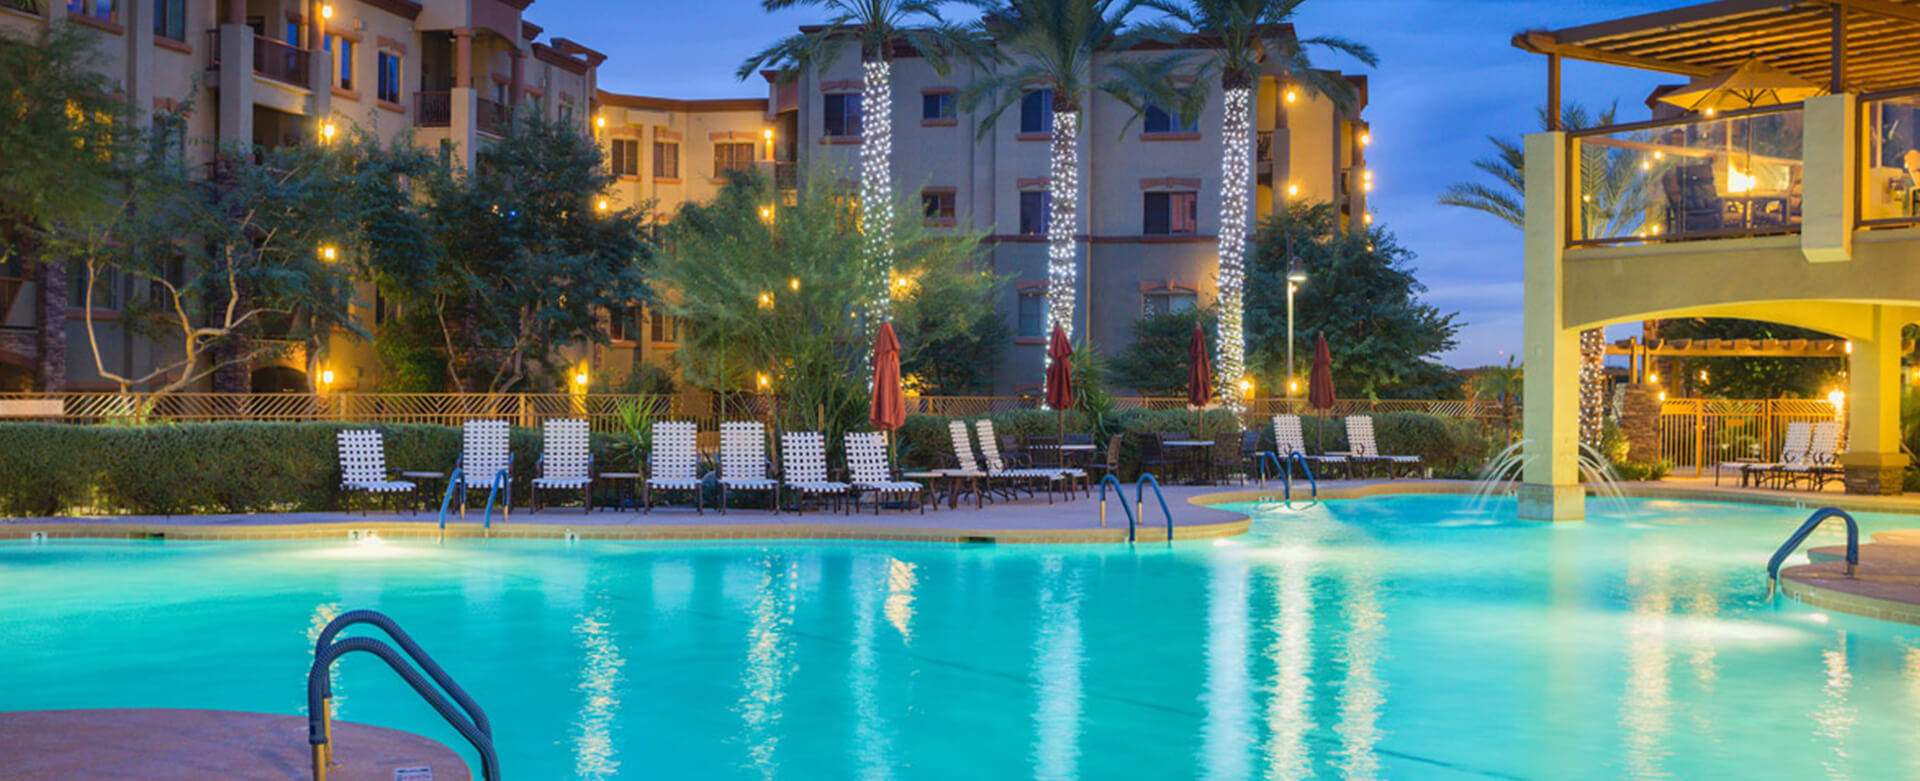 Phoenix Condos - picture of outdoor pool and pretty lighting at Toscana of Desert Ridge